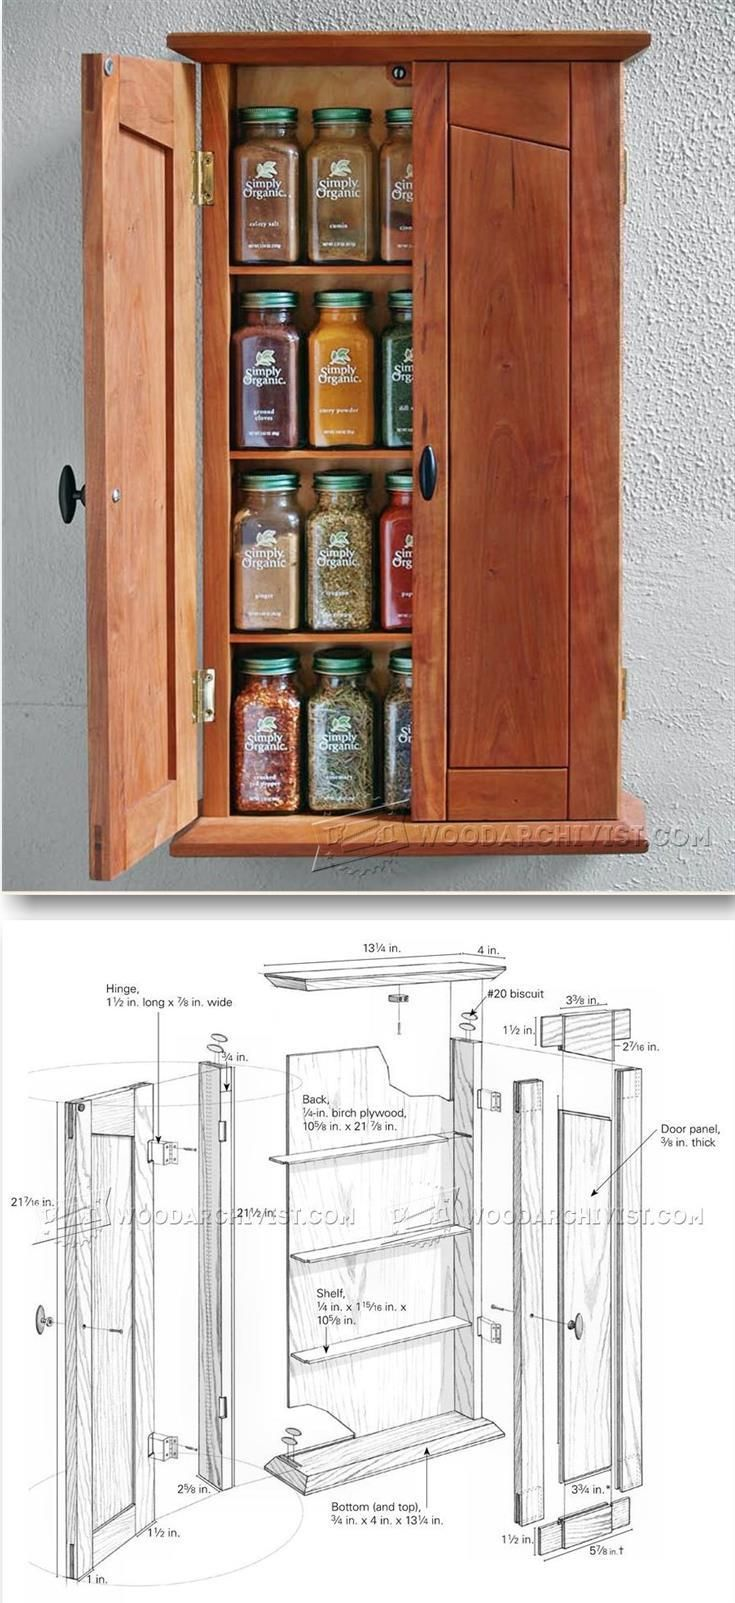 Best 25+ Spice cabinets ideas on Pinterest | Pull out spice rack ...